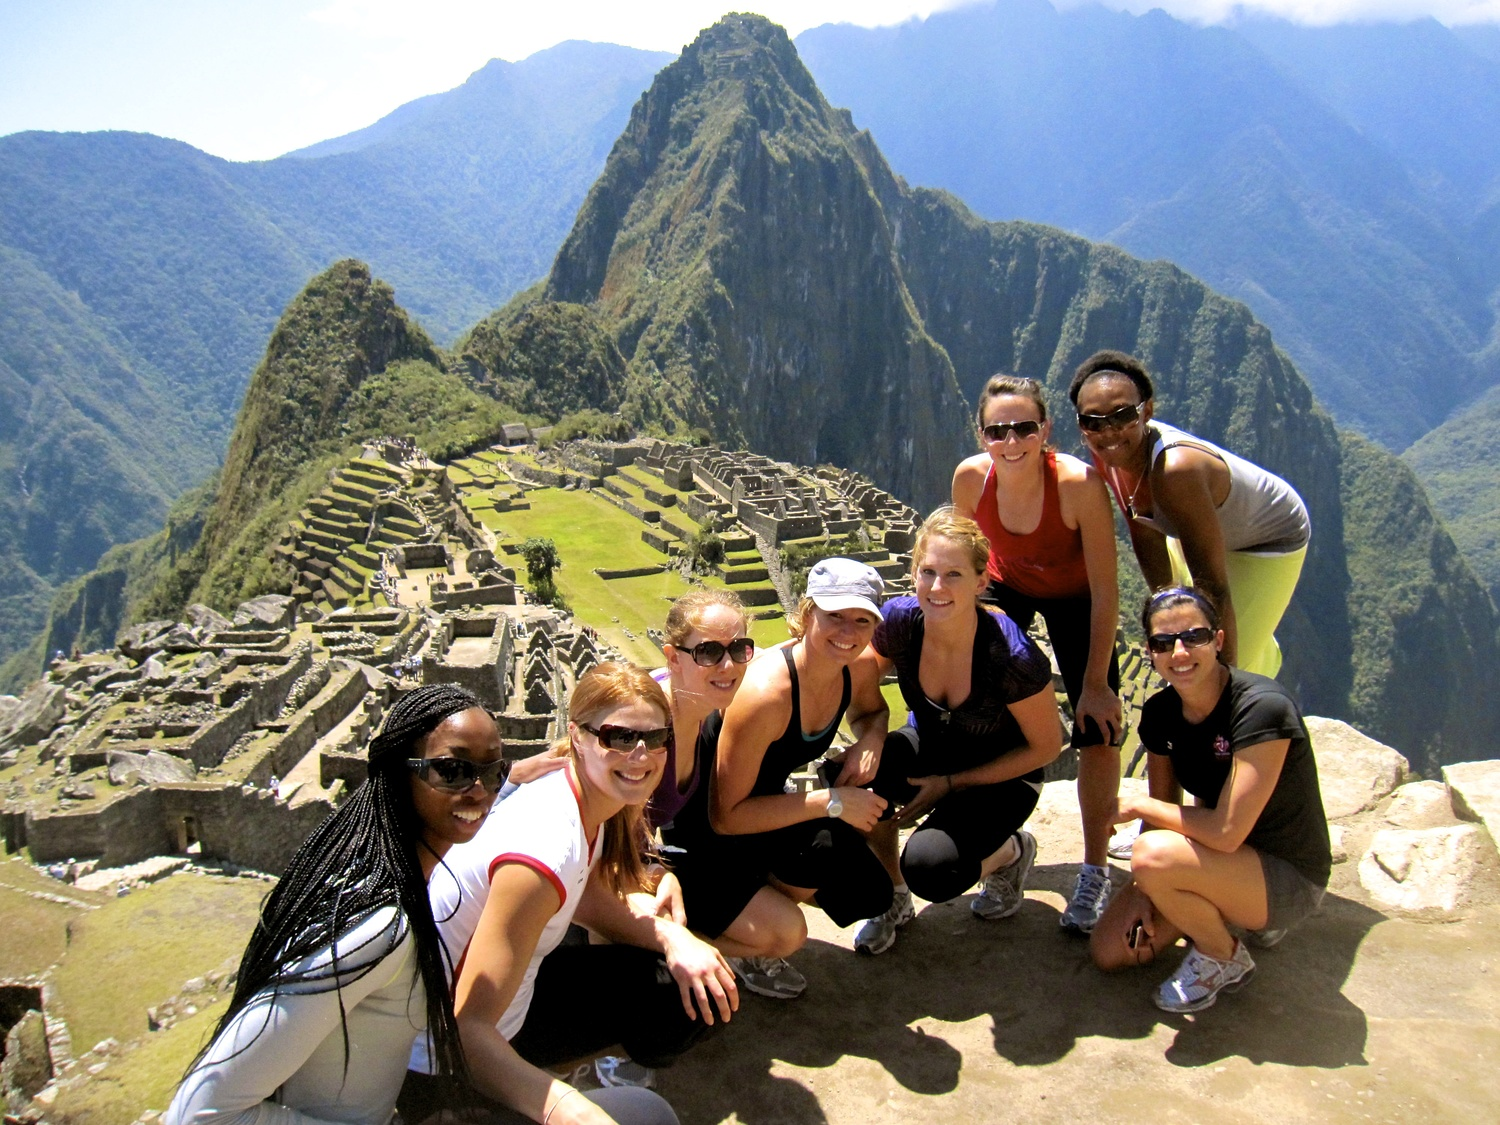 On top of Machu Picchu,a 15th-century Inca site located 2,430 metres above sea level.